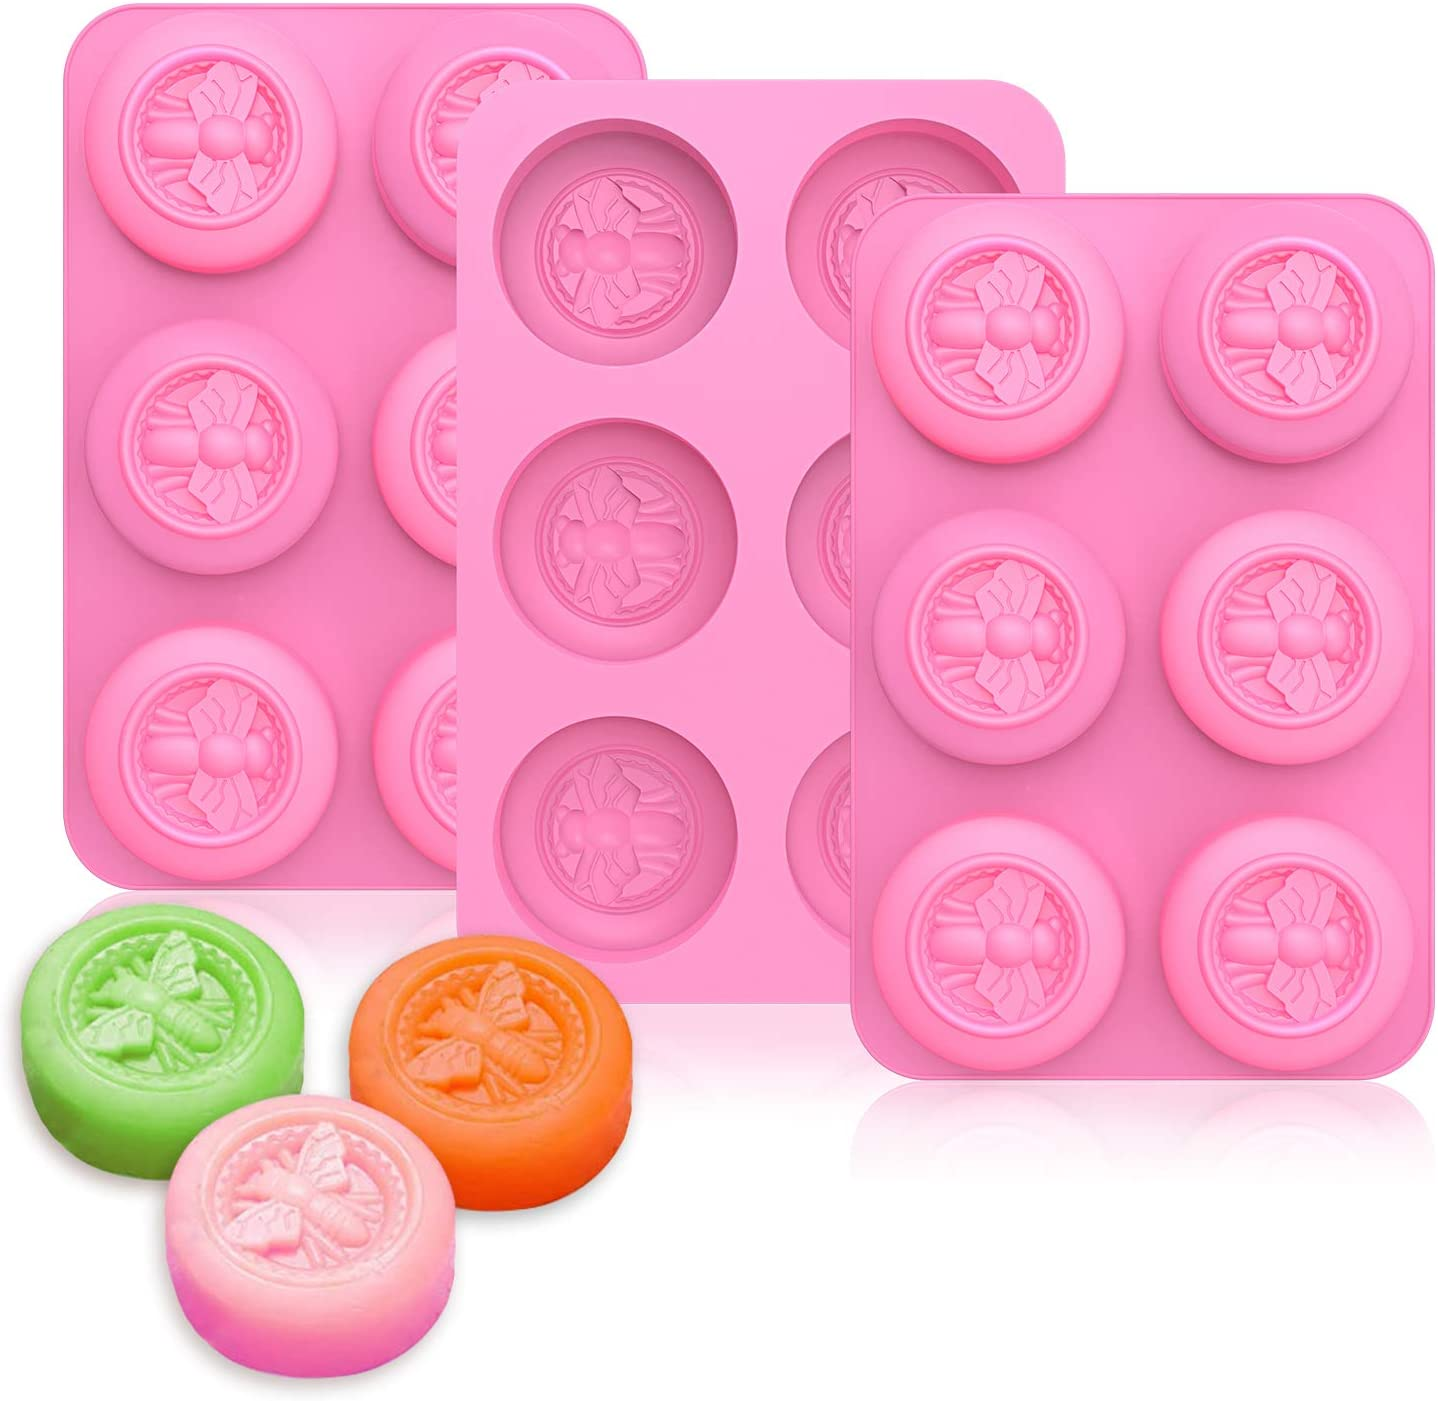 Acerich 3 Pack Bee Silicone Round Mak Soap Industry specialty shop No. 1 Molds for